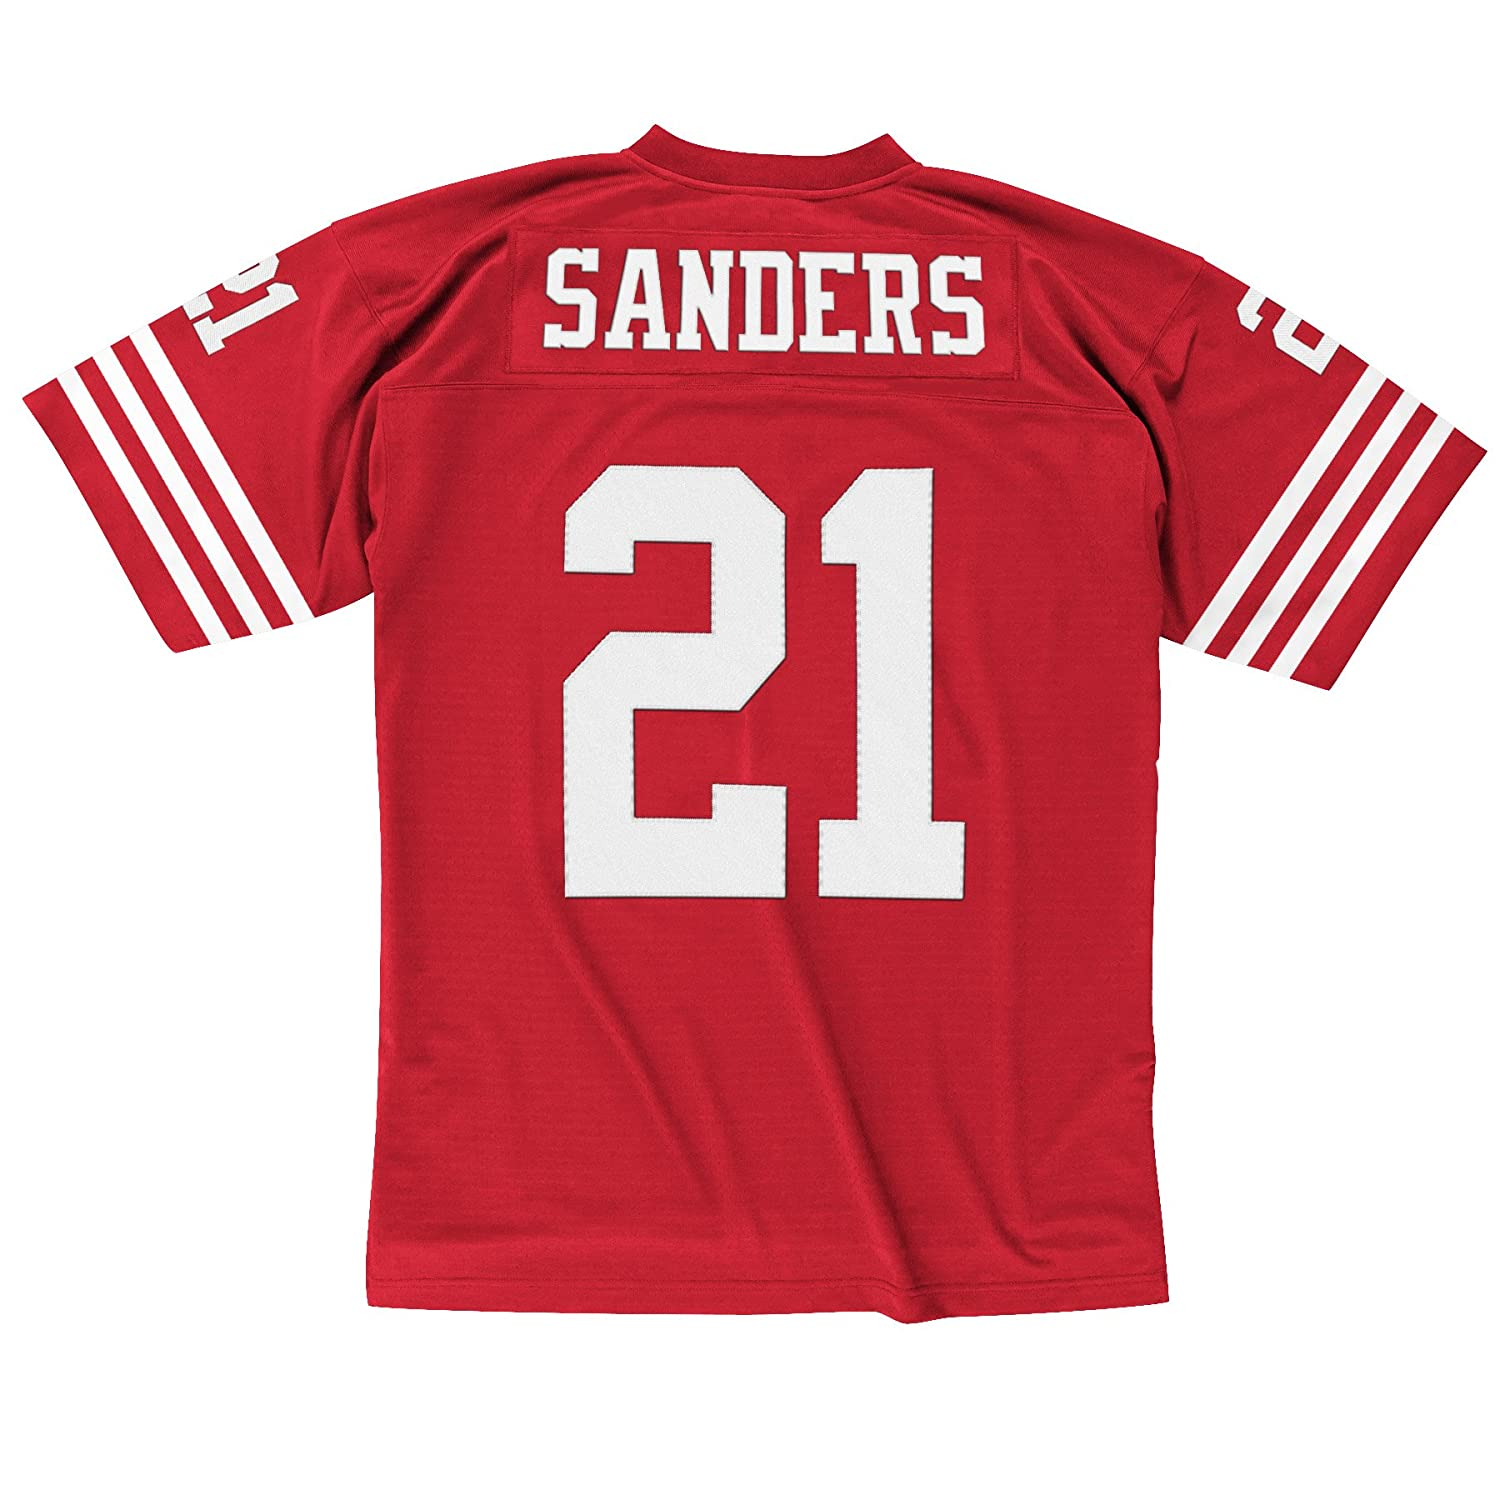 11f76bfc52e Amazon.com : Mitchell & Ness Deion Sanders 1994 San Francisco 49ers Home  Red Legacy Jersey : Sports & Outdoors